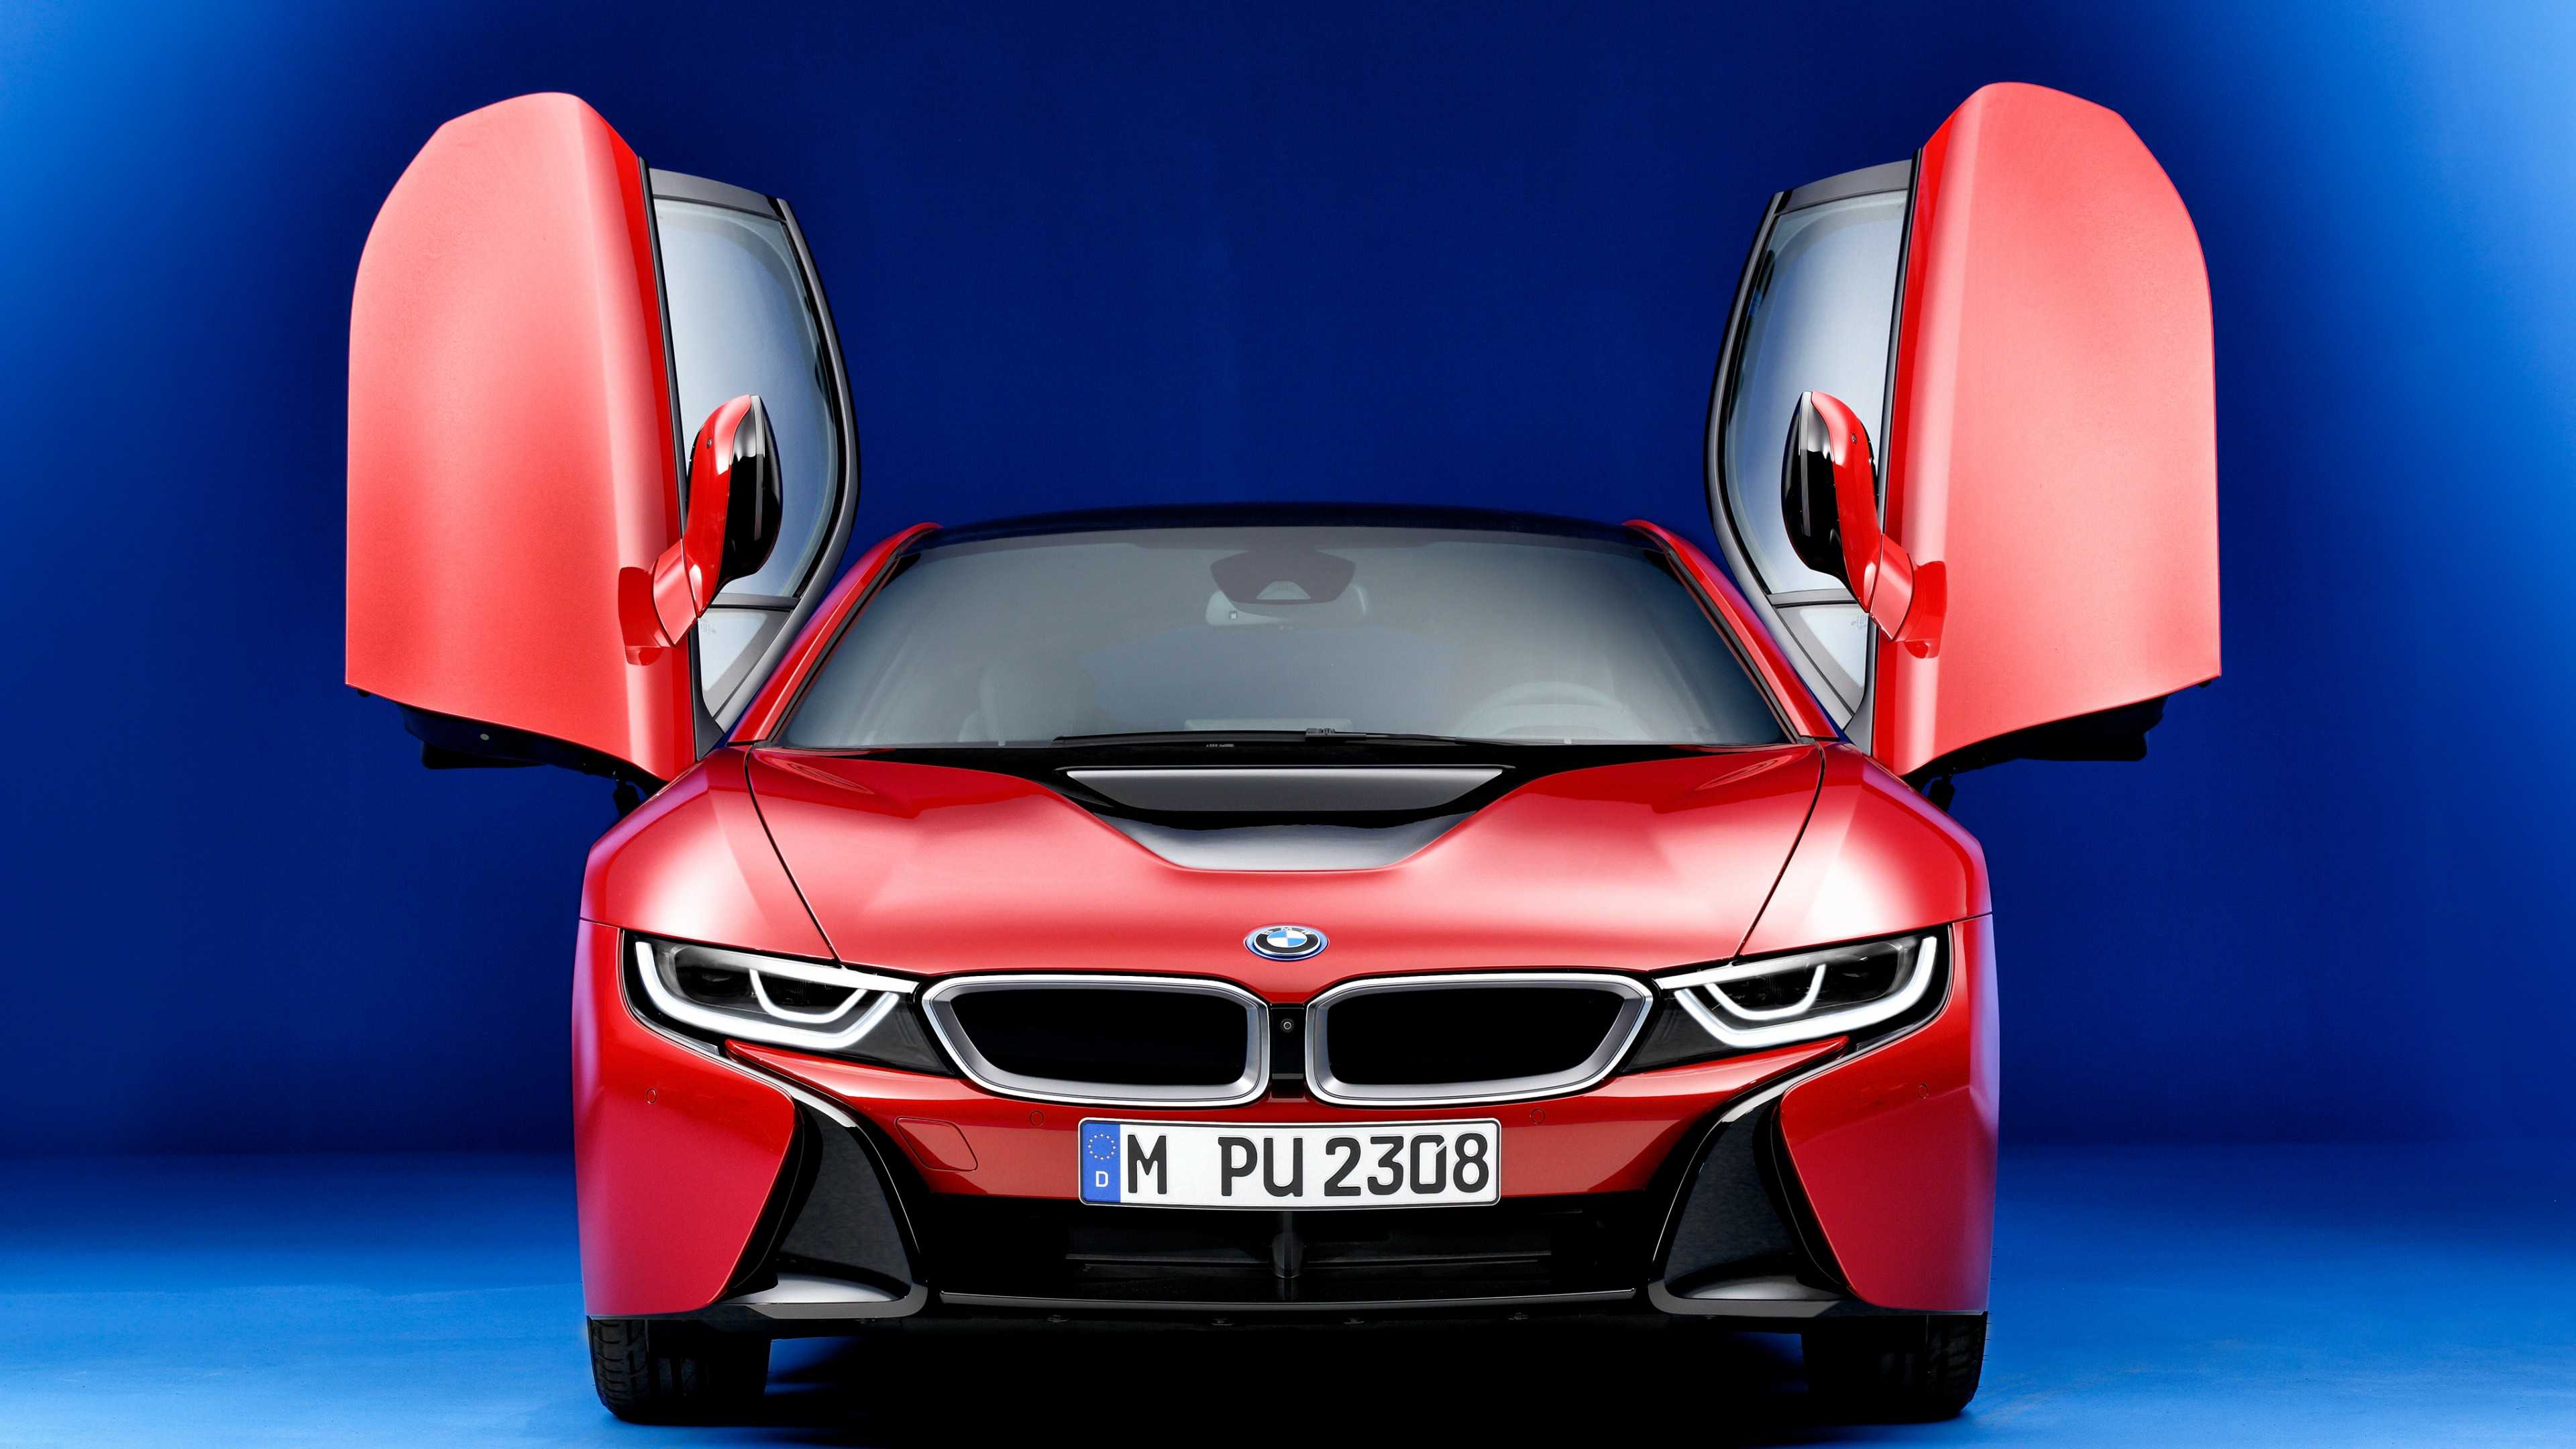 Wallpaper Bmw I8 Protonic Red Edition Geneva Motor Show 2016 Hybrid Red Cars Bikes 8636 Page 58